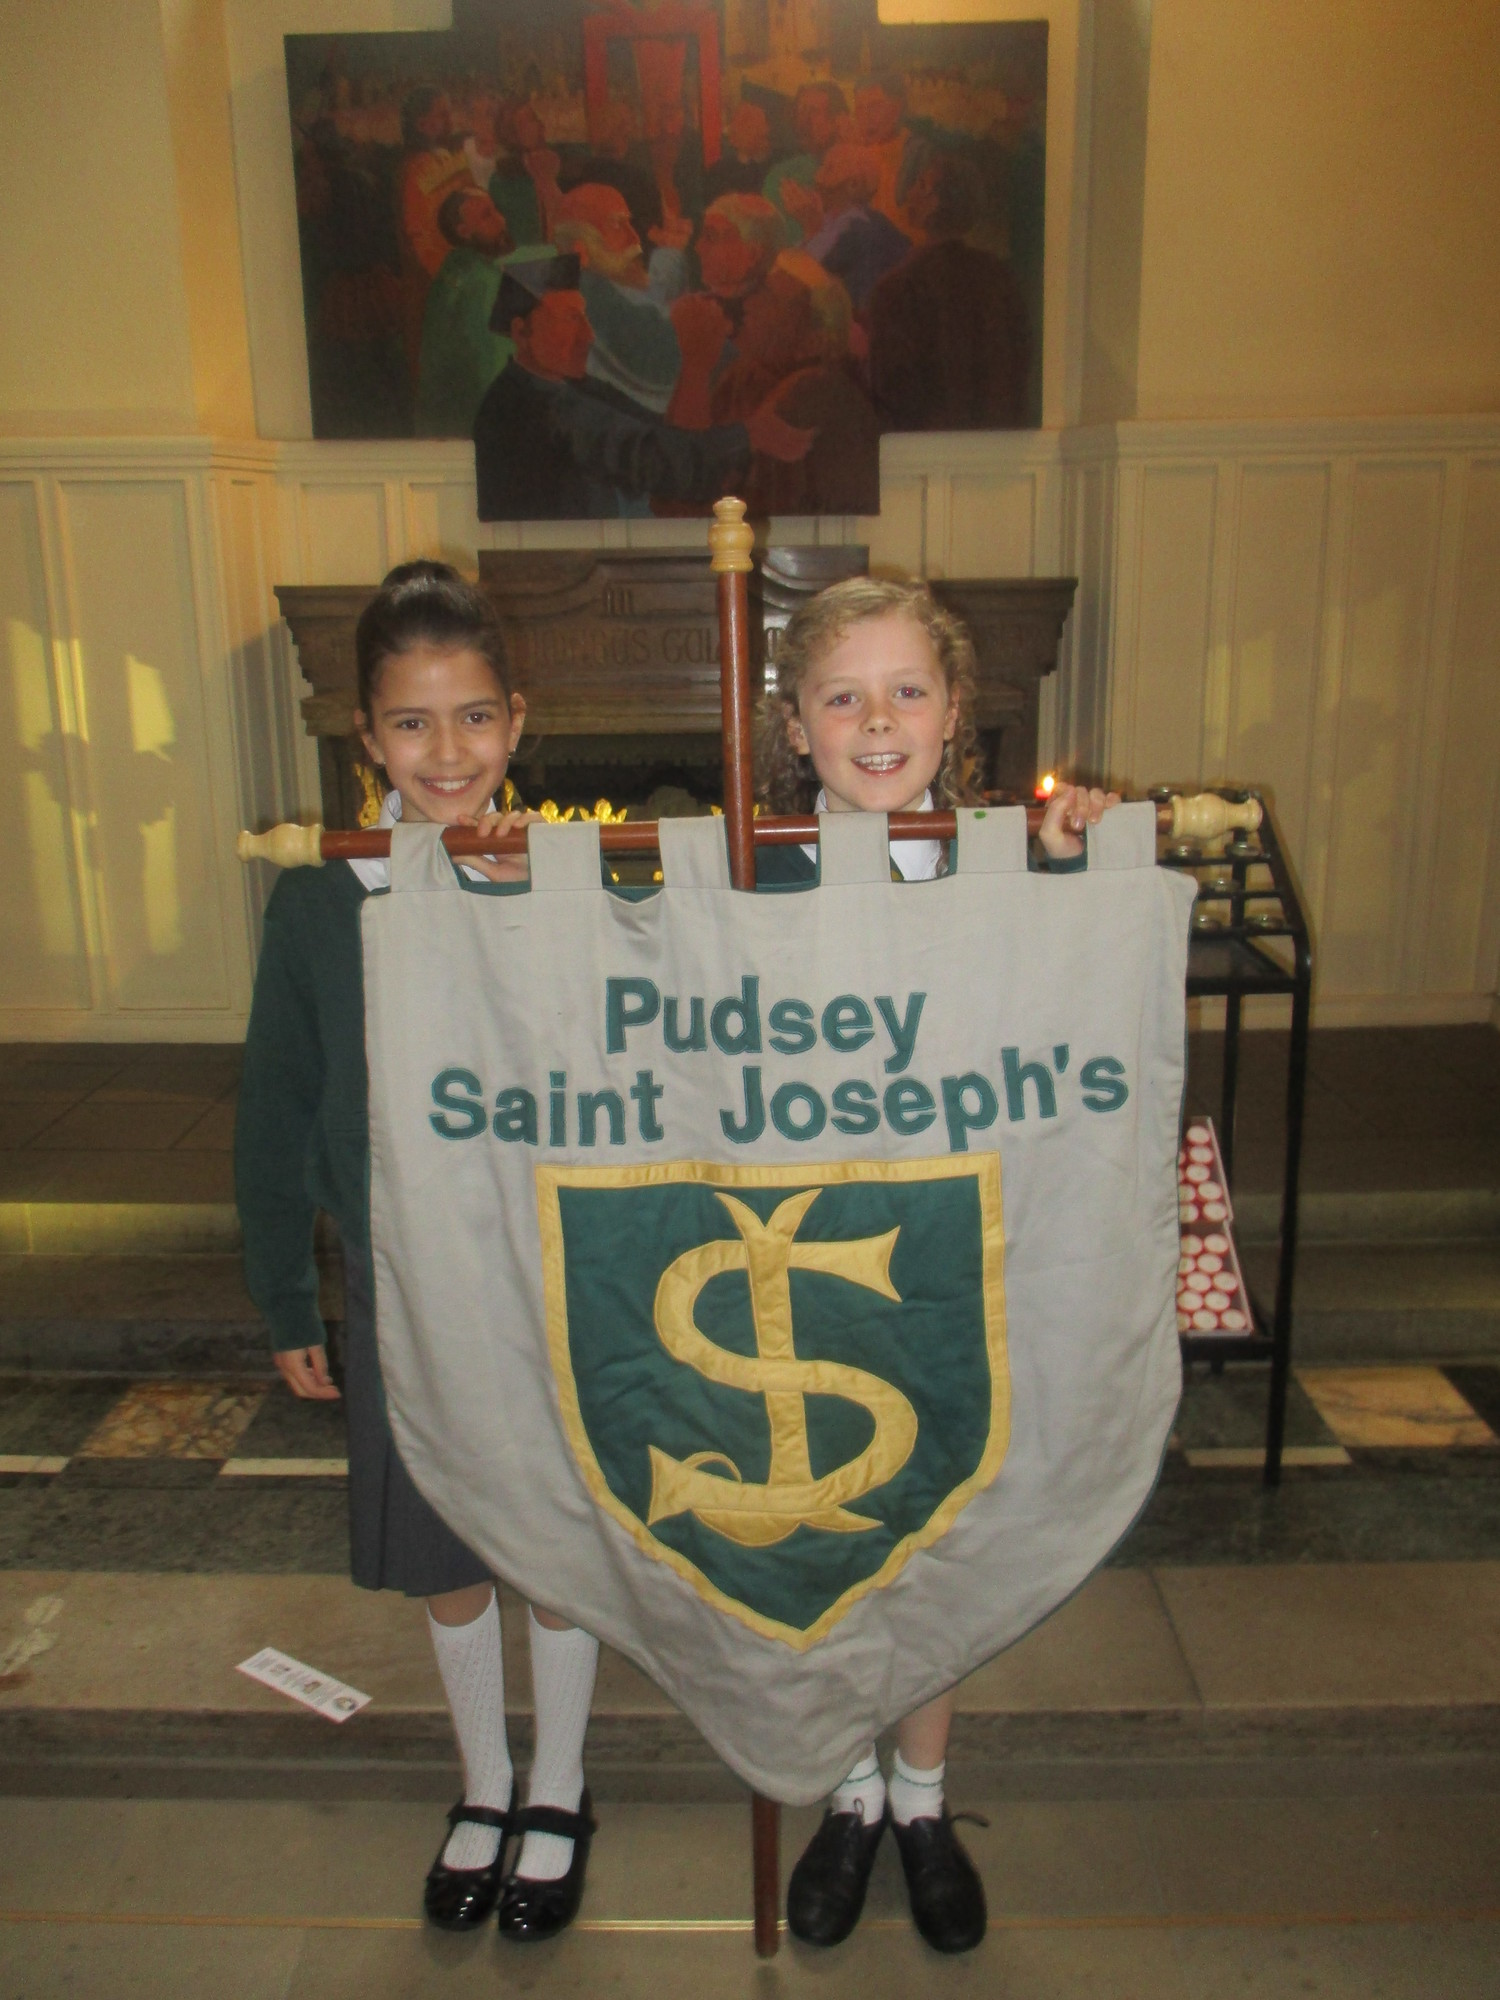 Olivia and Eleanor represented St. Joseph's, Pudsey.